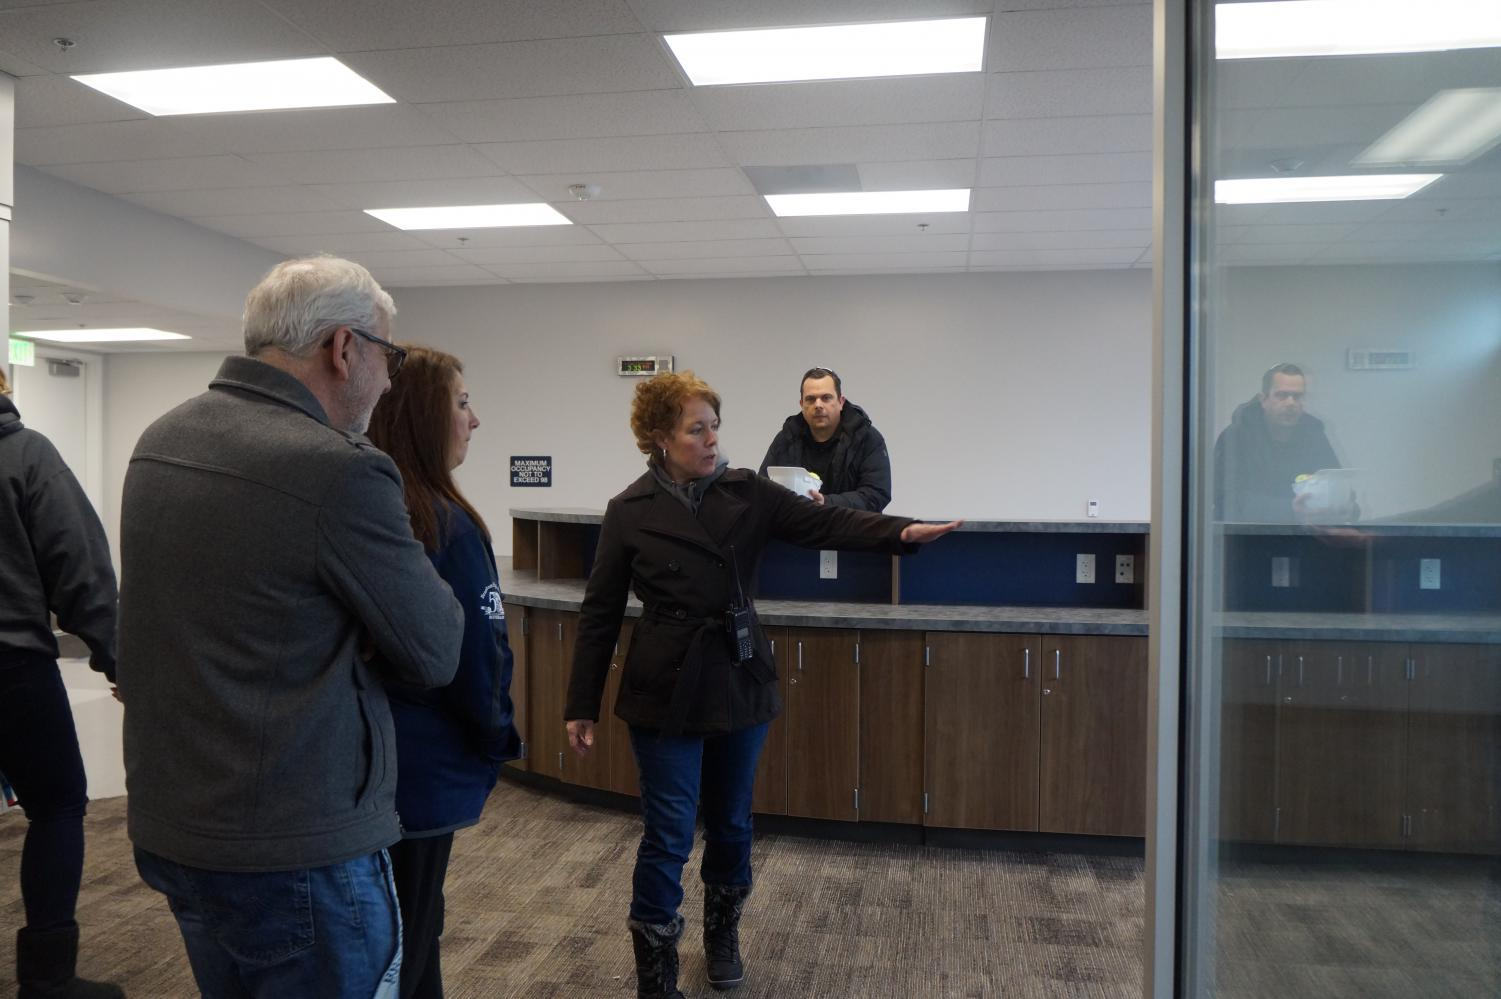 Principal Cheryl Lawton takes teachers on a tour of a finished campus building.